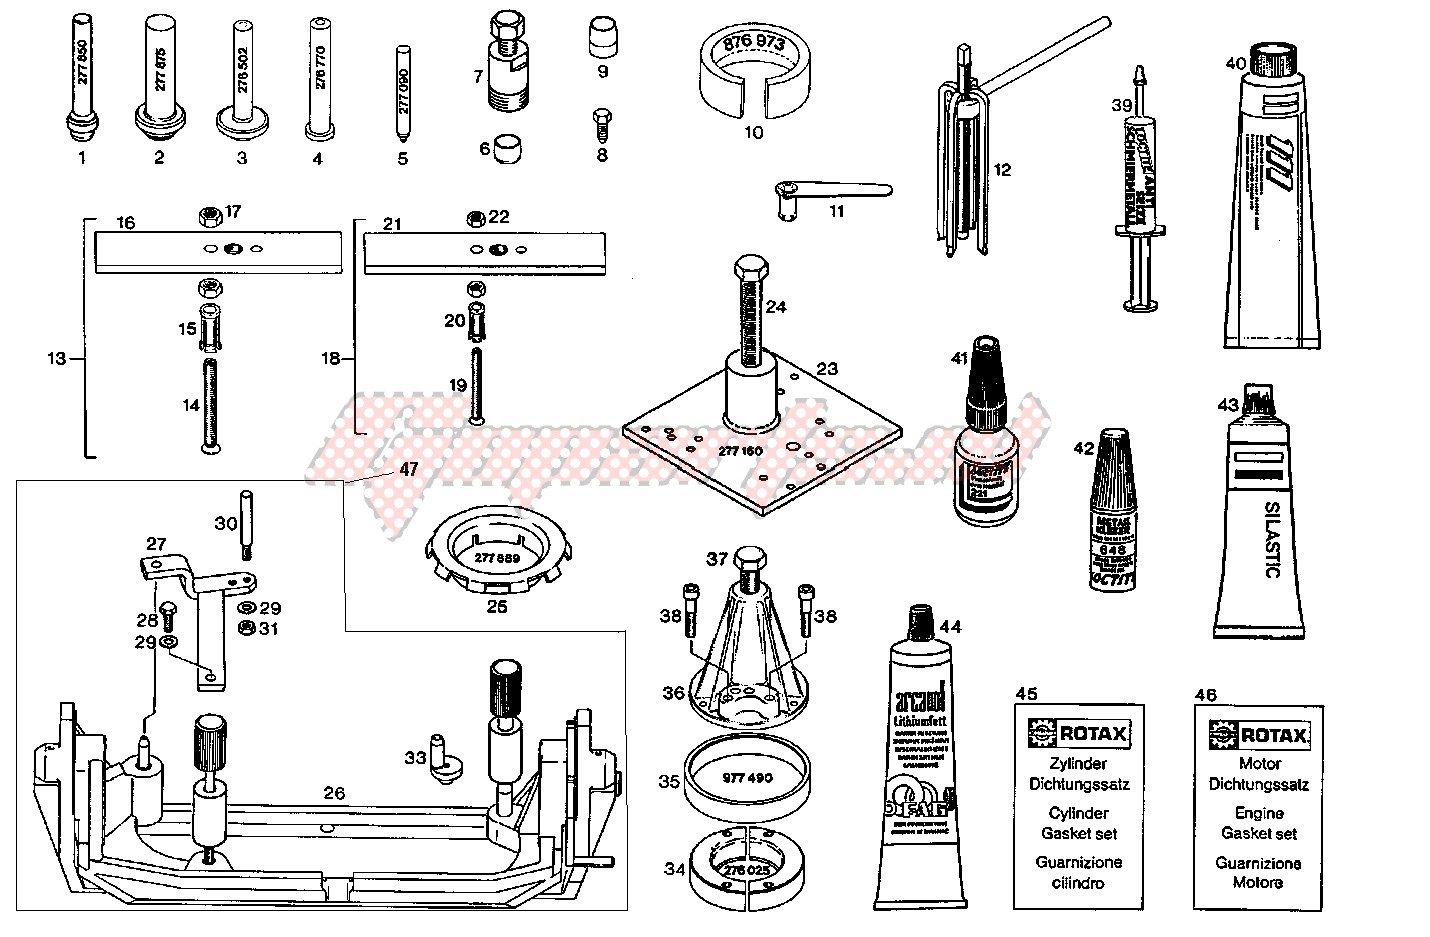 Special tools-Repair tools - gasket set